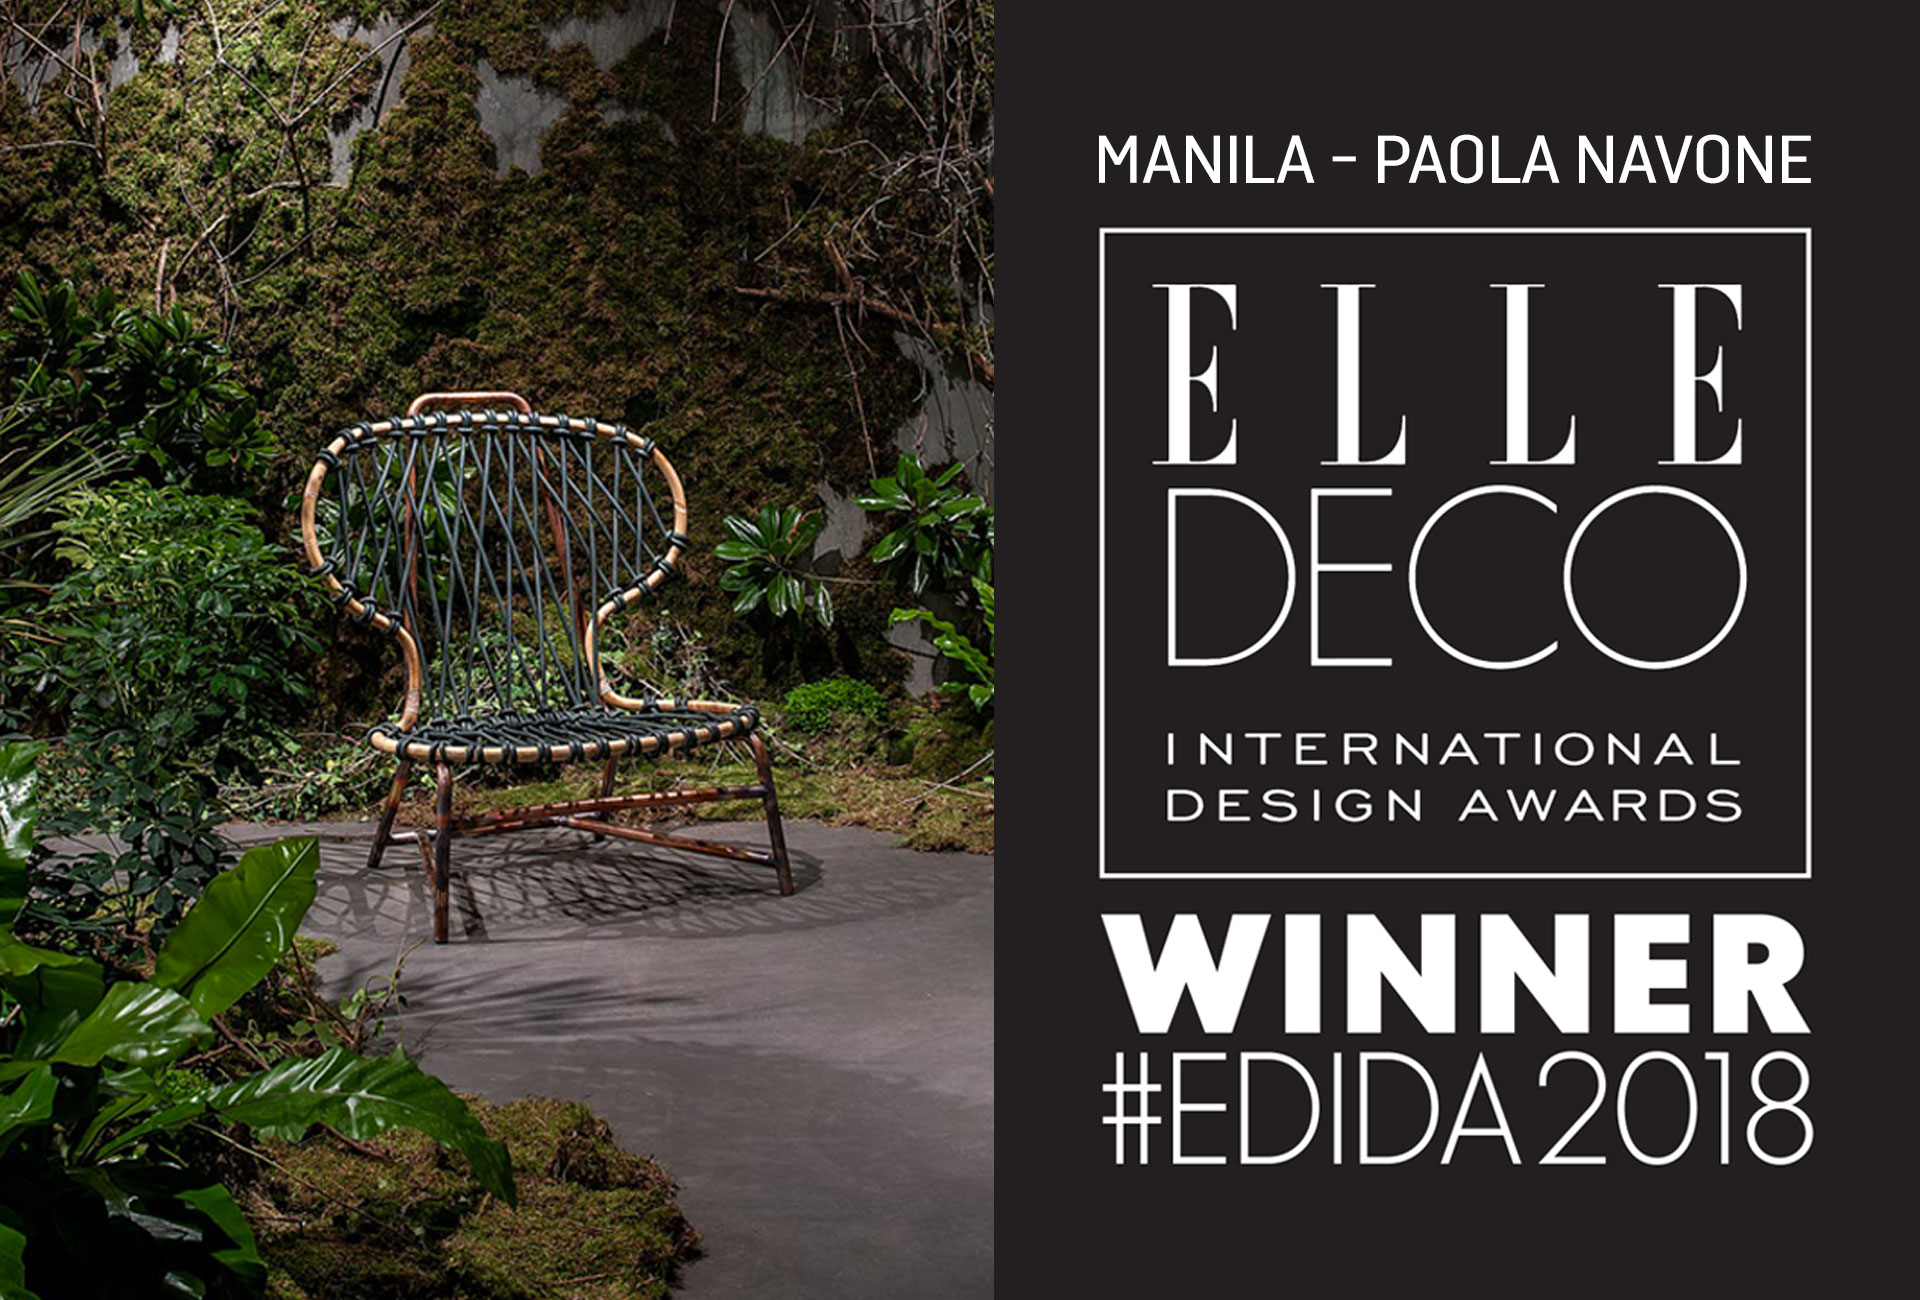 ELLE DECO INTERNATIONAL DESIGN AWARDS 2018